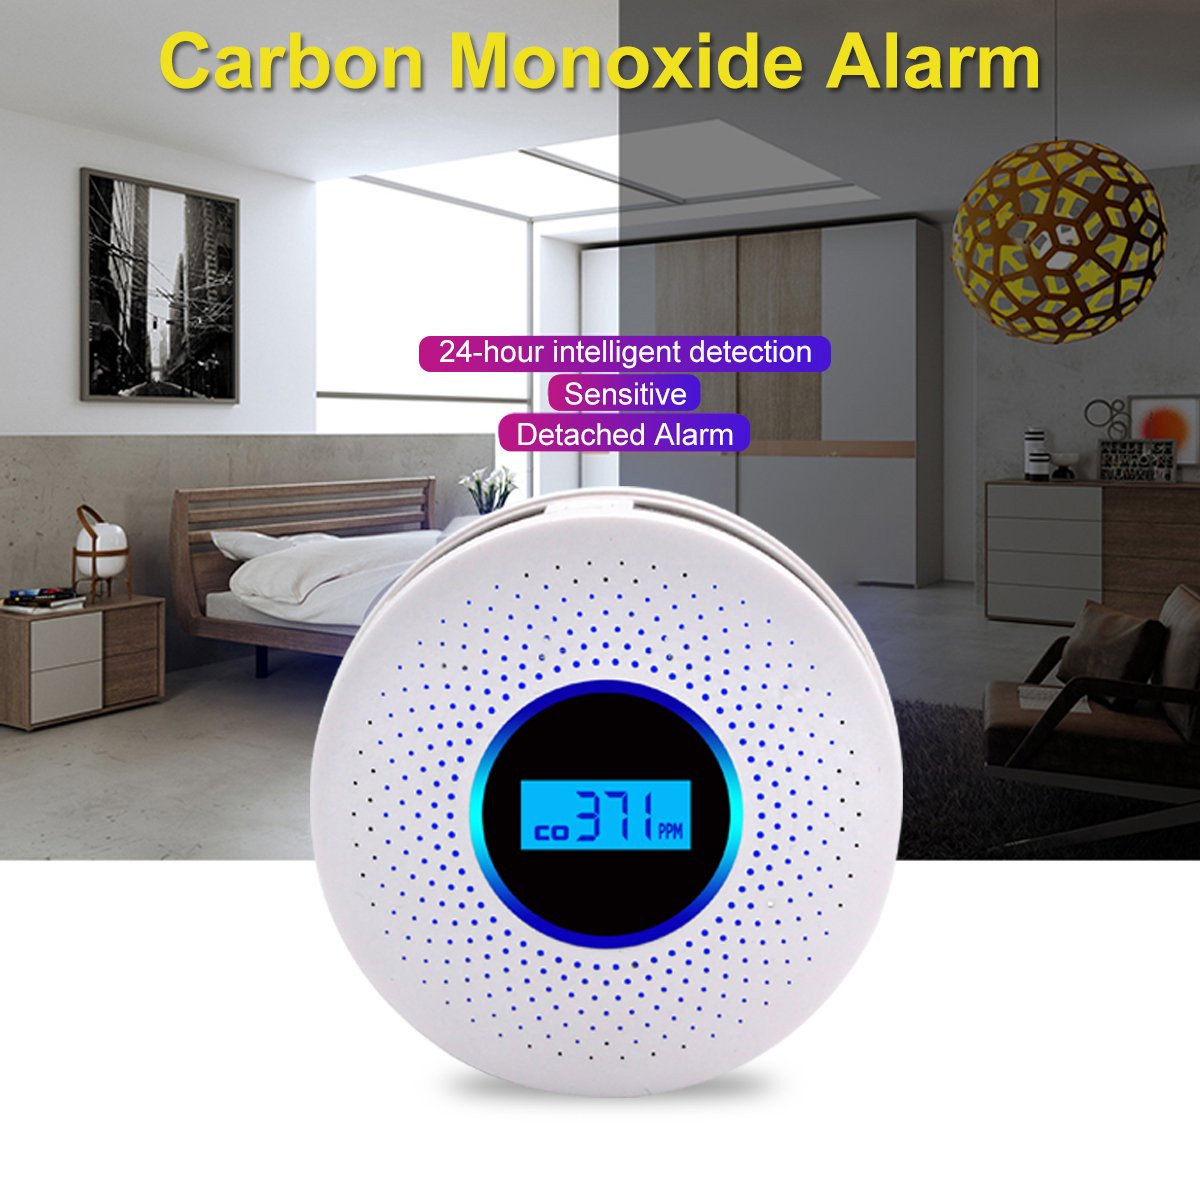 2 In 1 LED Digital Gas Smoke Alarm Co Carbon Monoxide Detector Voice Warn Sensor Home Security Protection High Sensitive